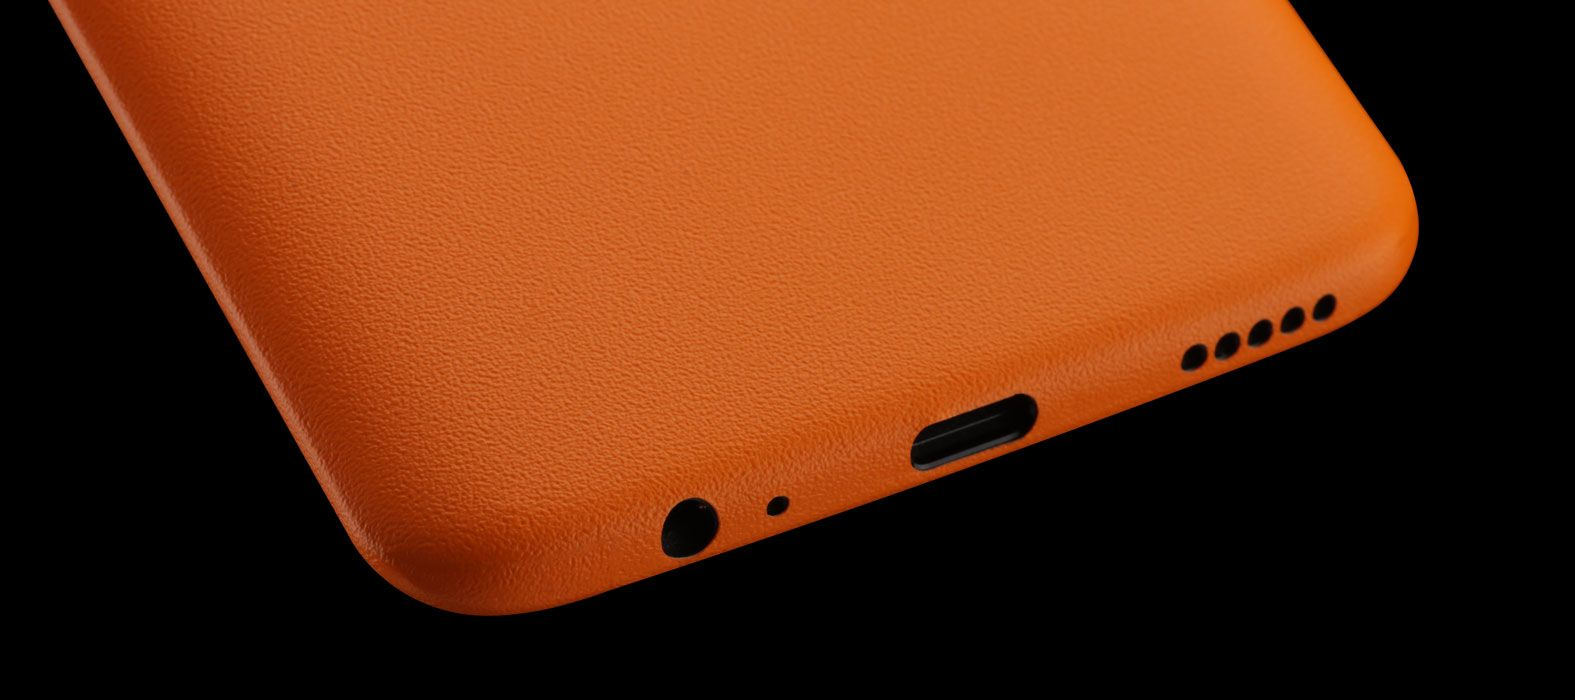 OnePlus 5T Skins, Decals, Wraps - Sandstone orange